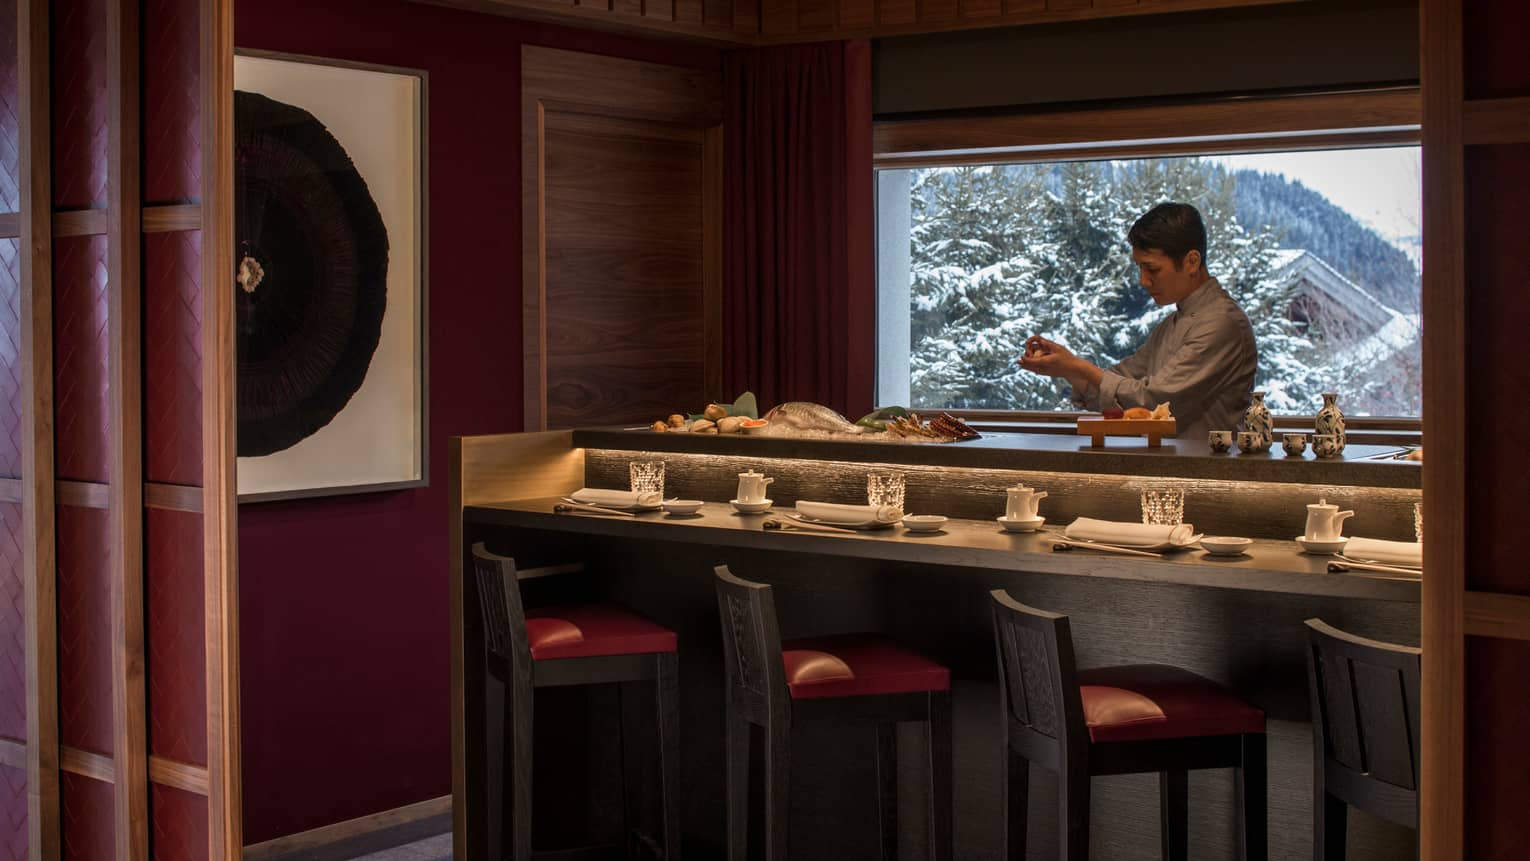 Office Tourisme Megeve Megeve Fine Dining Michelin Starred Restaurant Bar Four Seasons